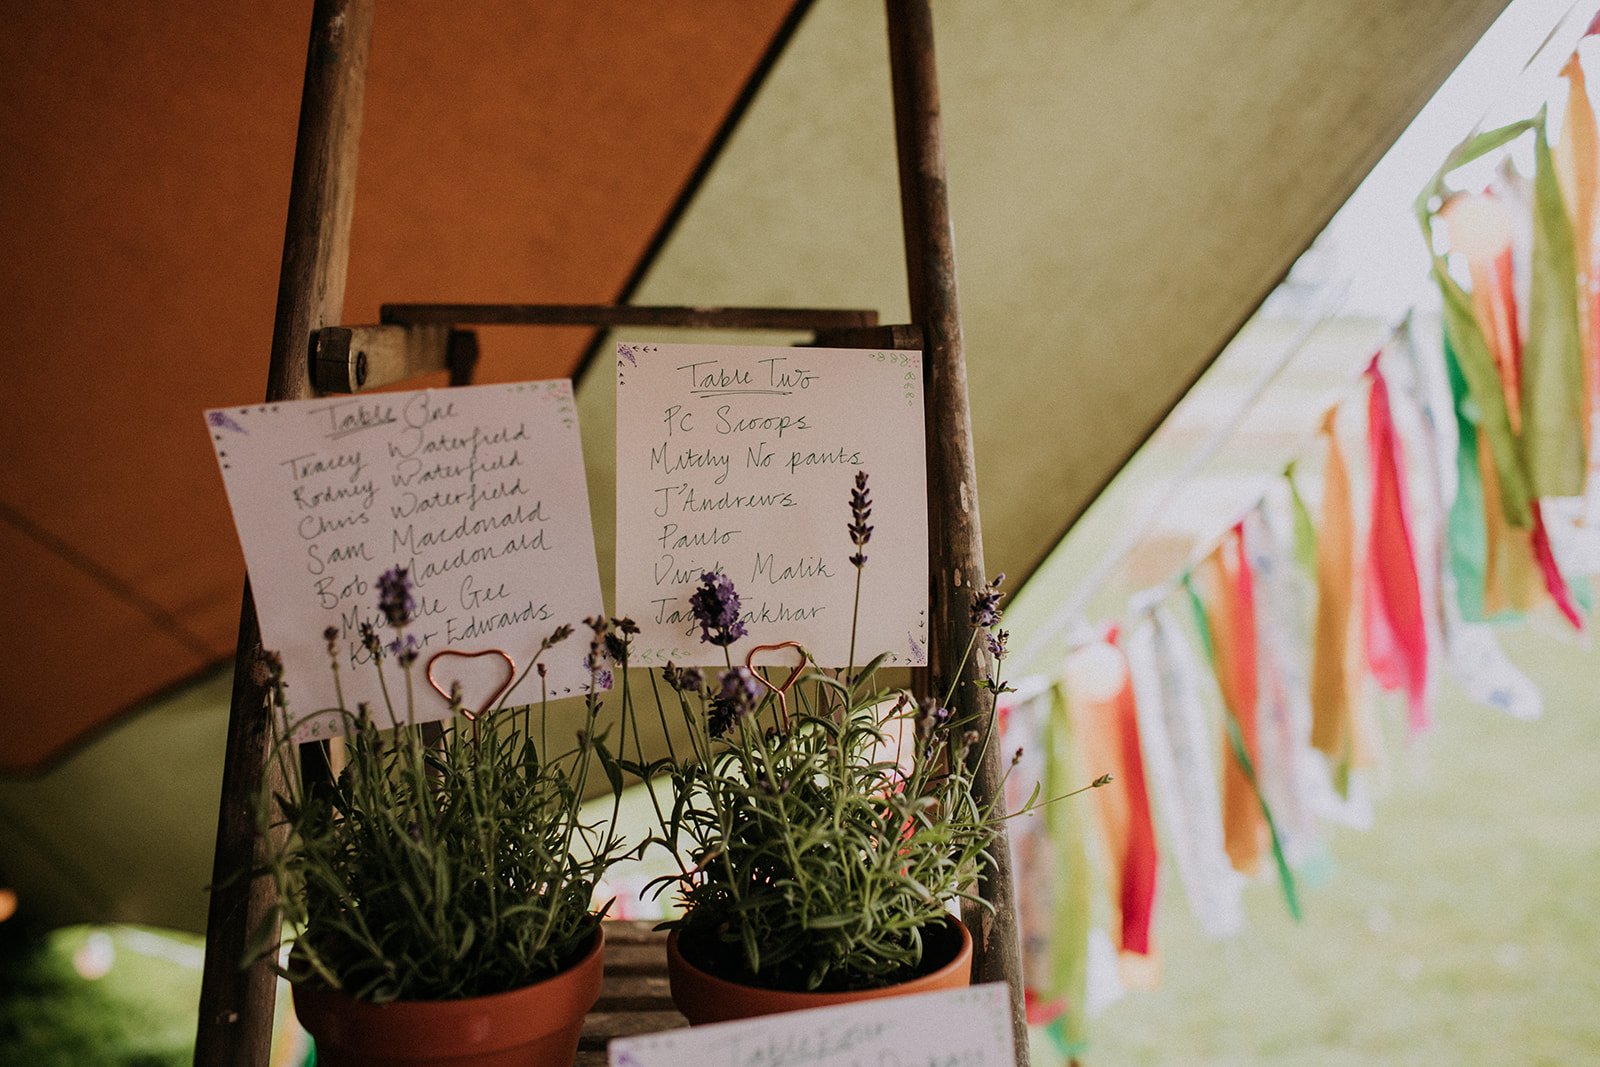 Herb Ladder seating plan - cattows farm wedding with sami tipi